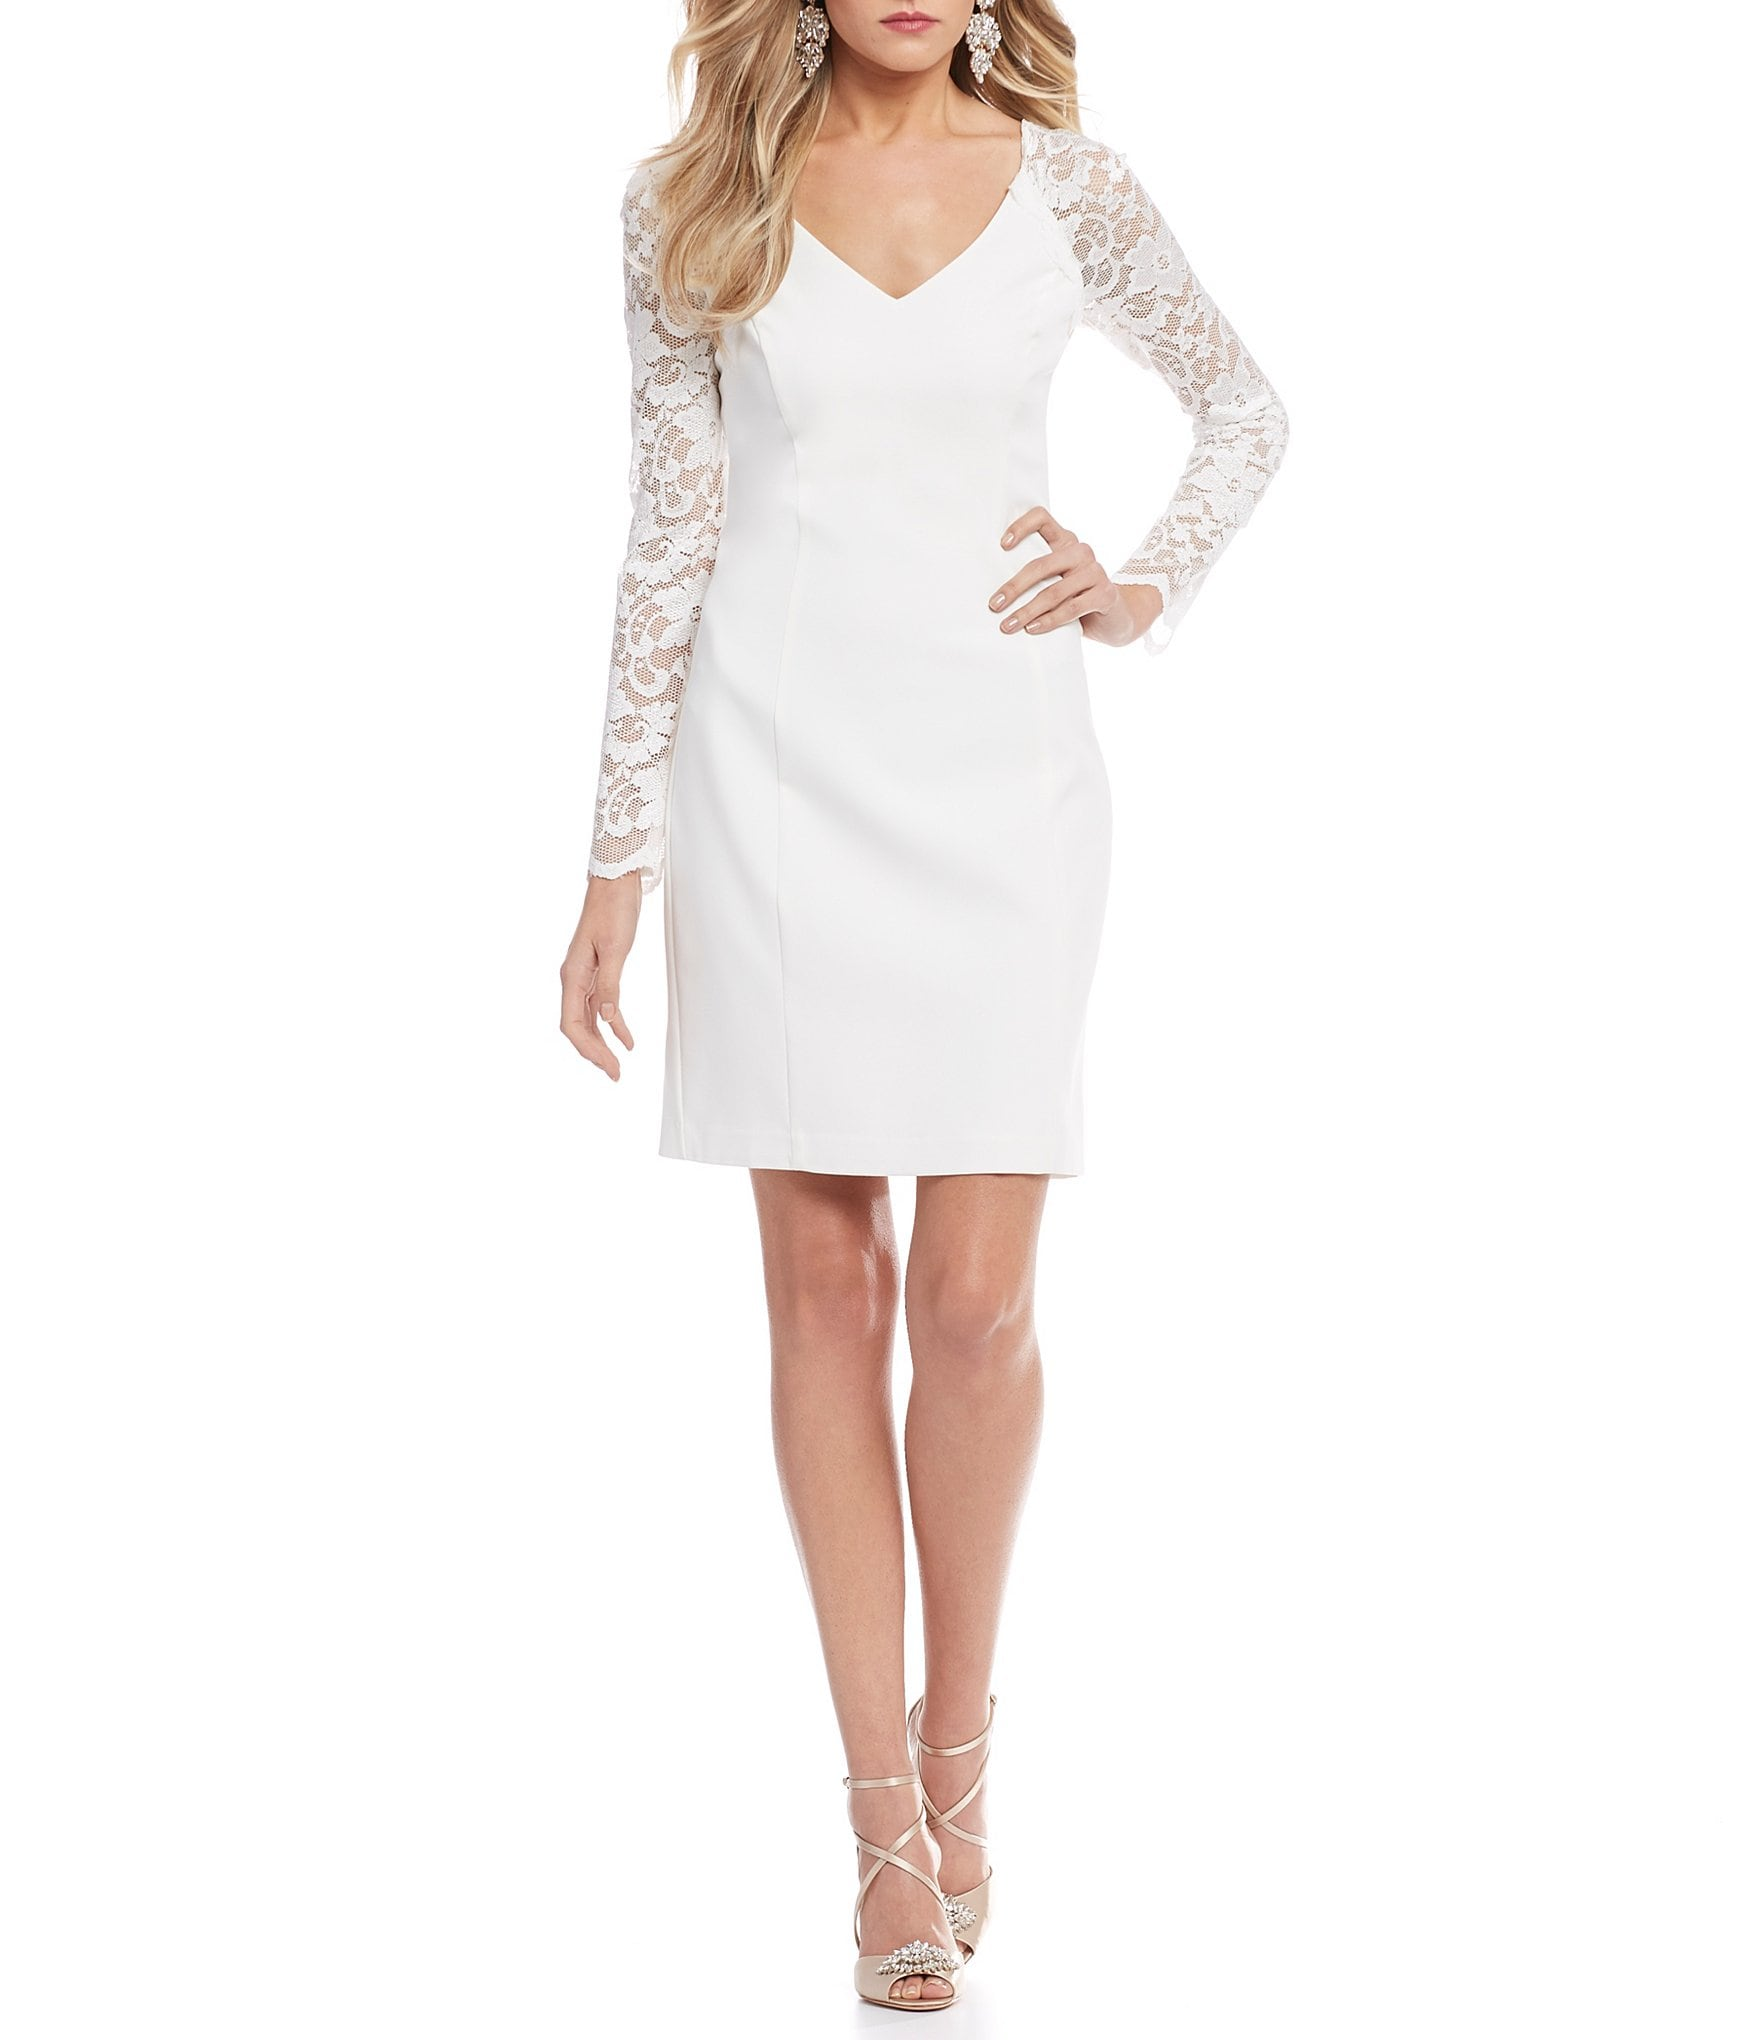 Silver white cocktail dress